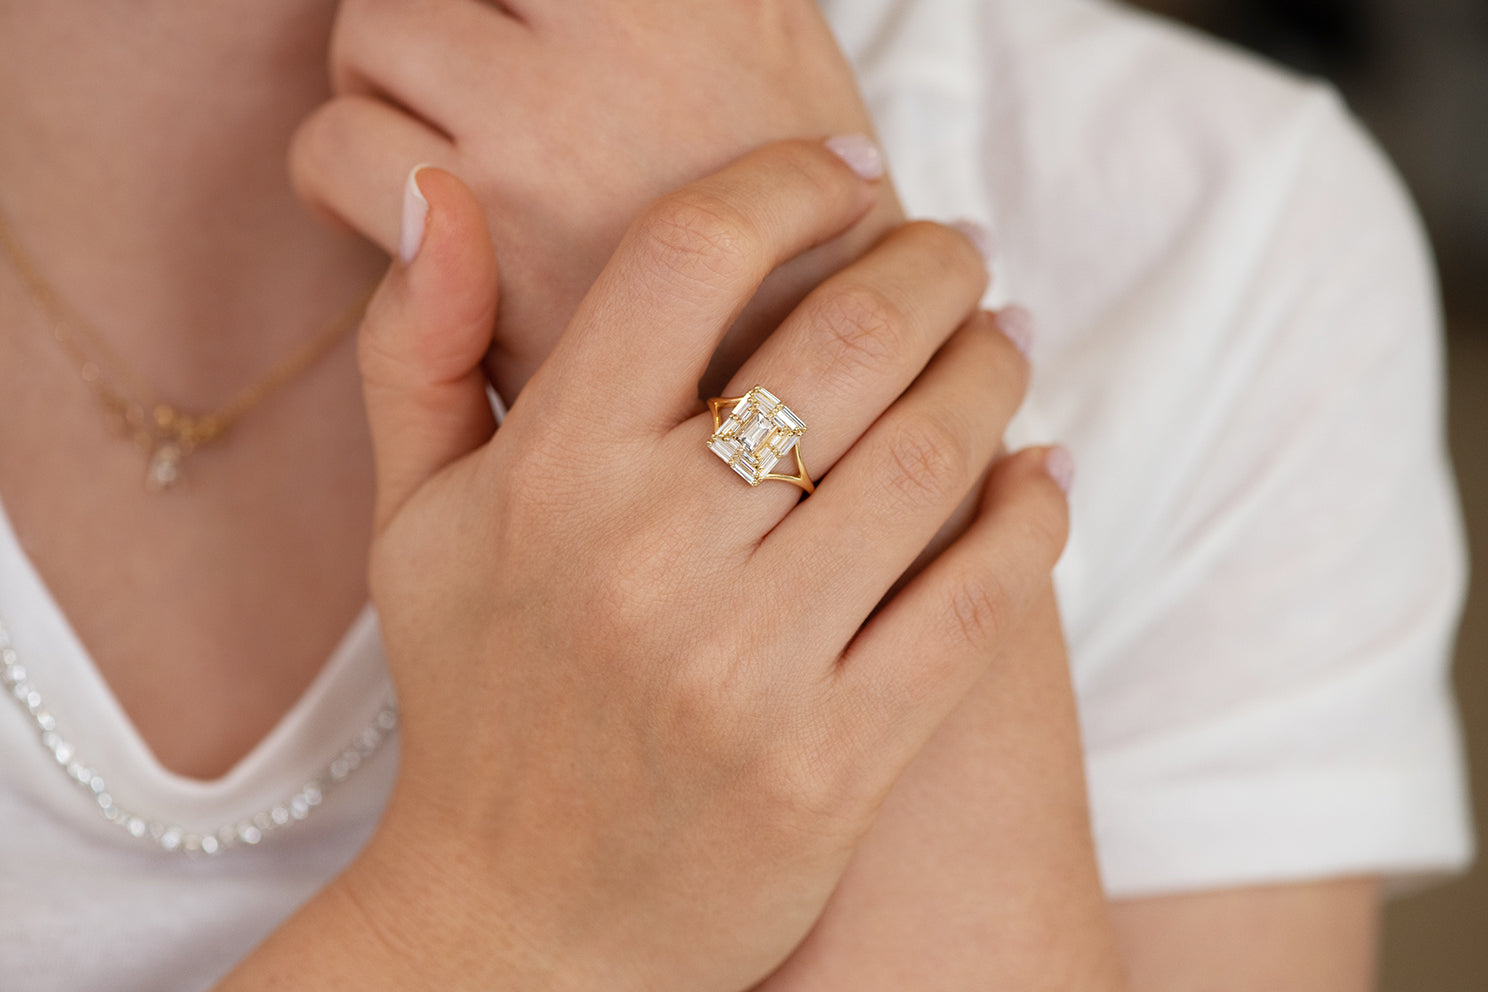 Baguette Cut Engagement Ring - Baguette Temple Ring on Hand Other Angle